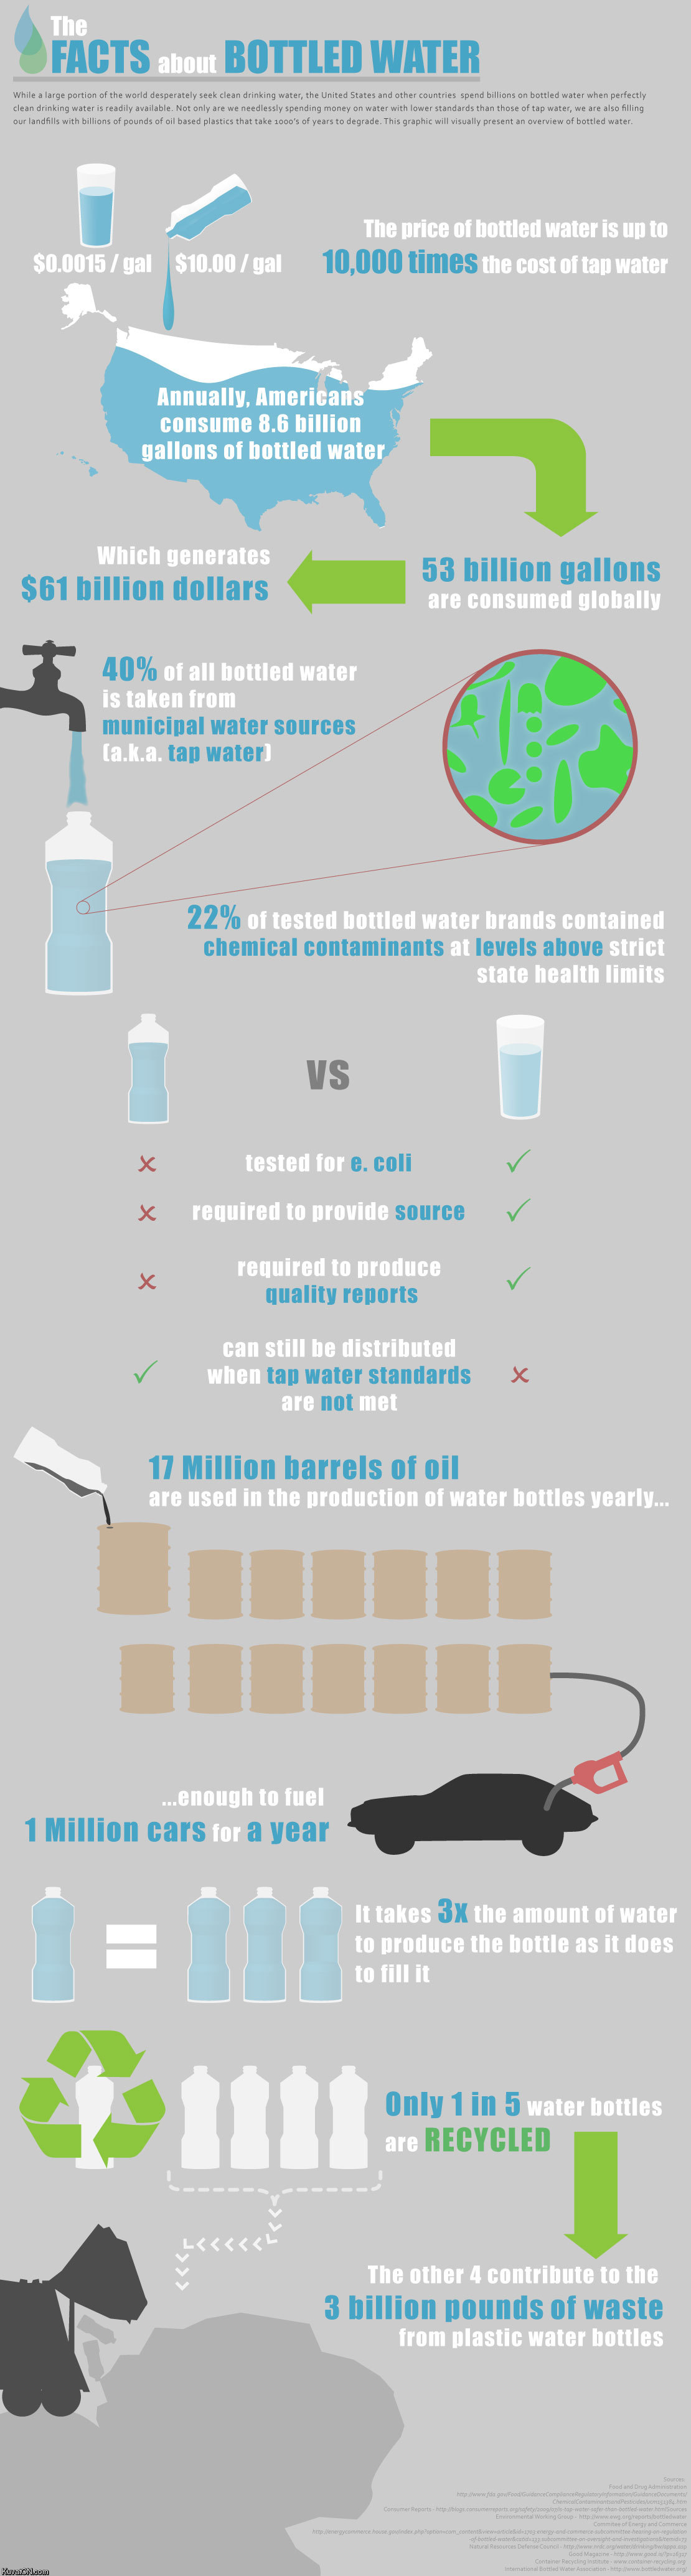 facts_about_bottled_water.jpg